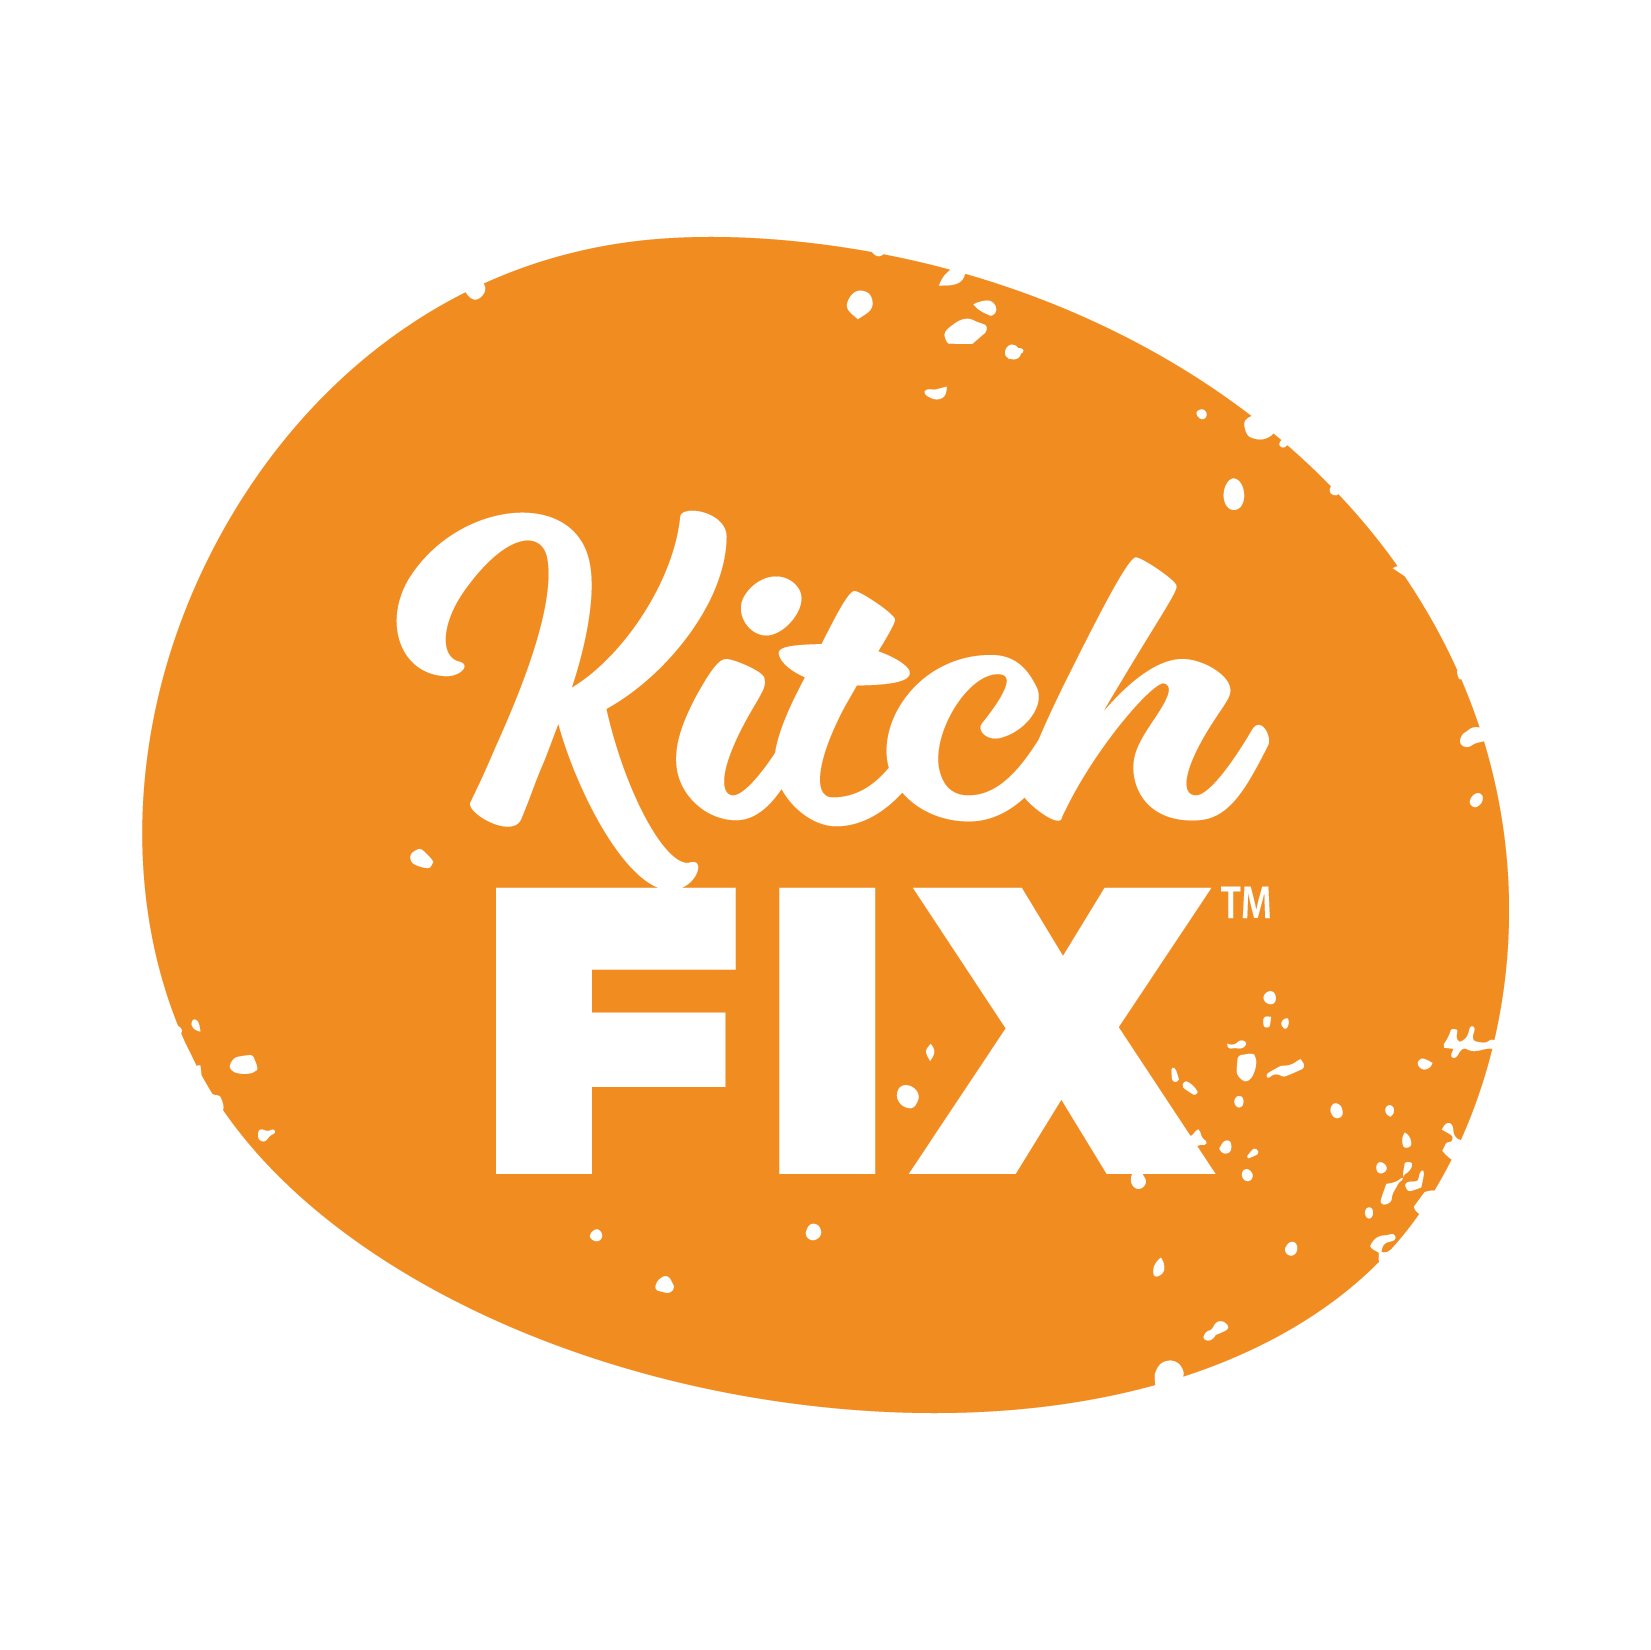 KitchFix-LOGO-COLOR-ORANGE.png